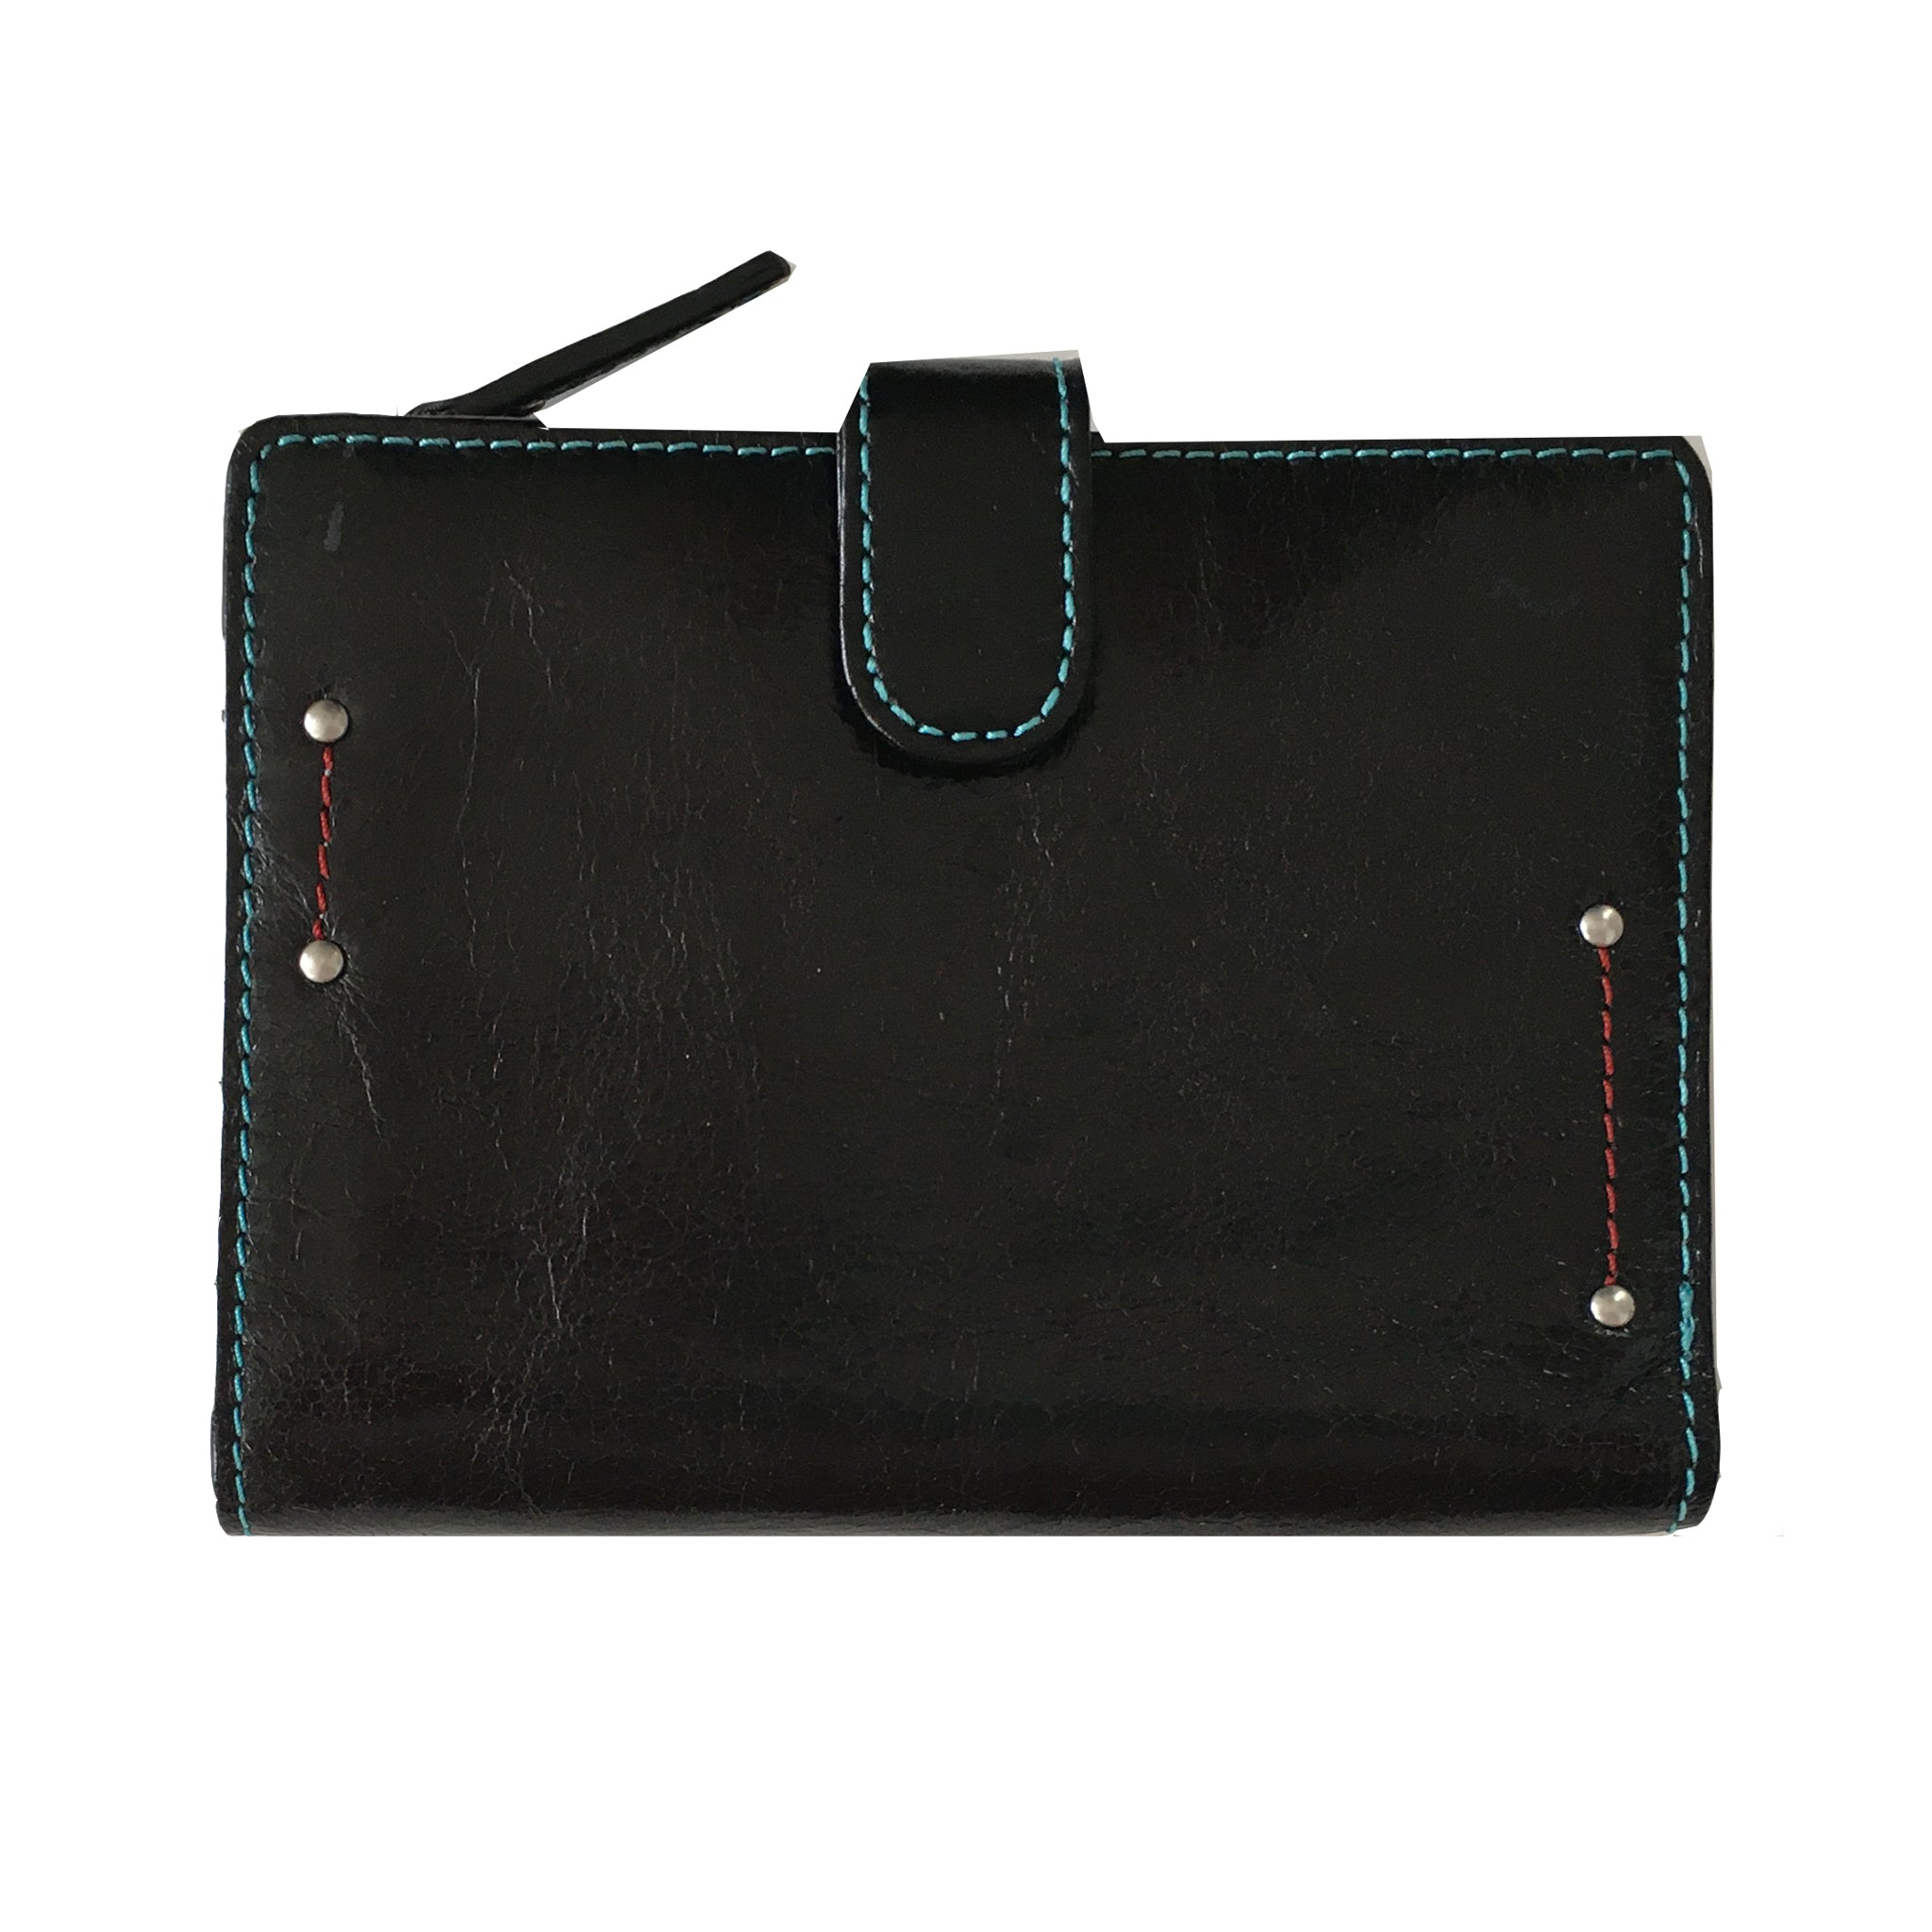 Highway Sadie - The Highway Wallet | Black